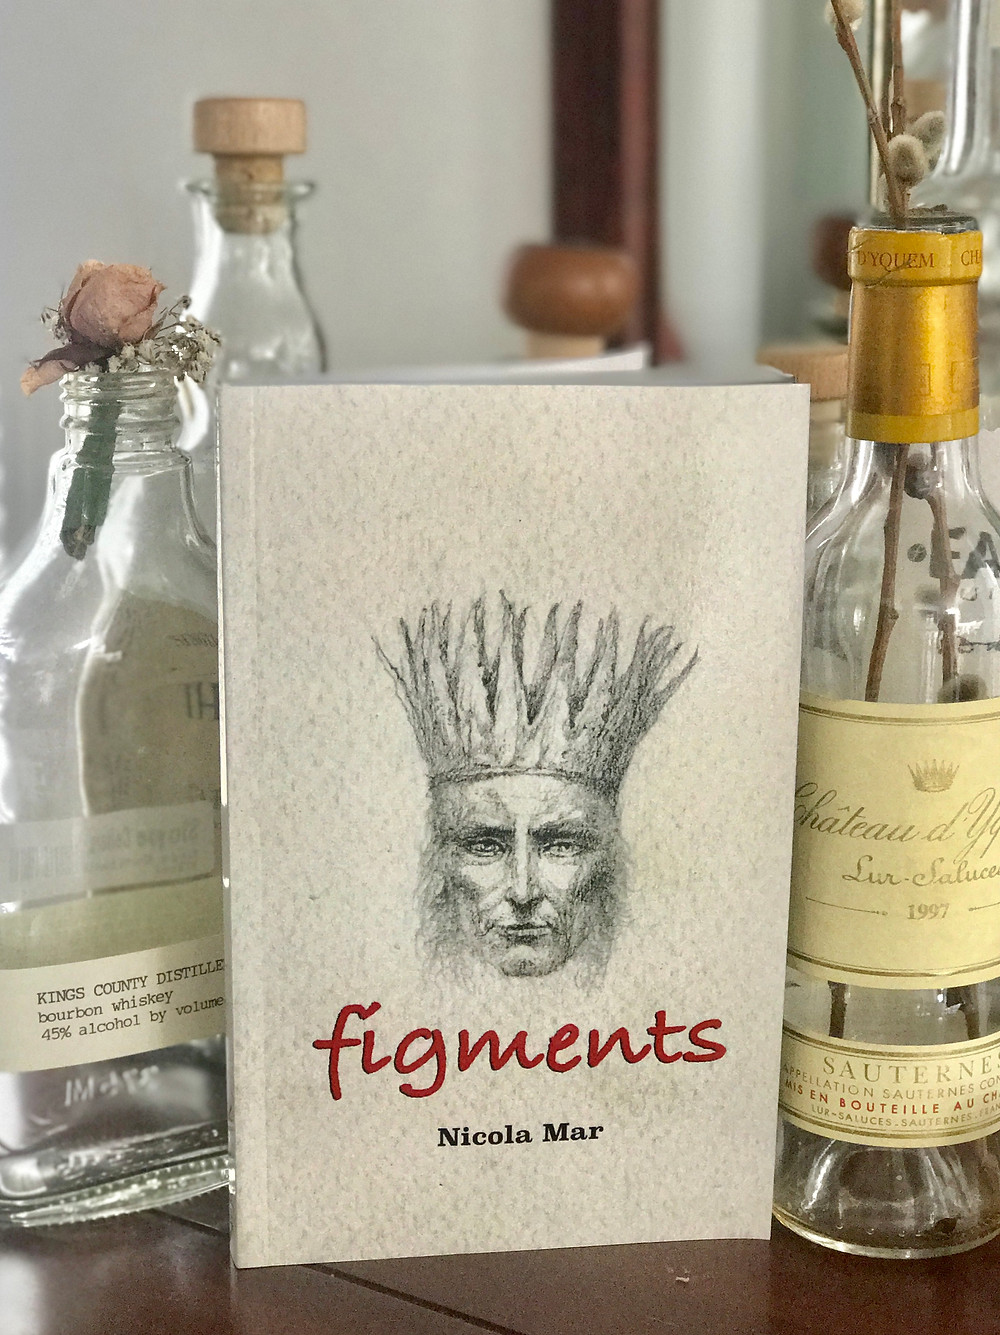 nicola mar poetry book Figments